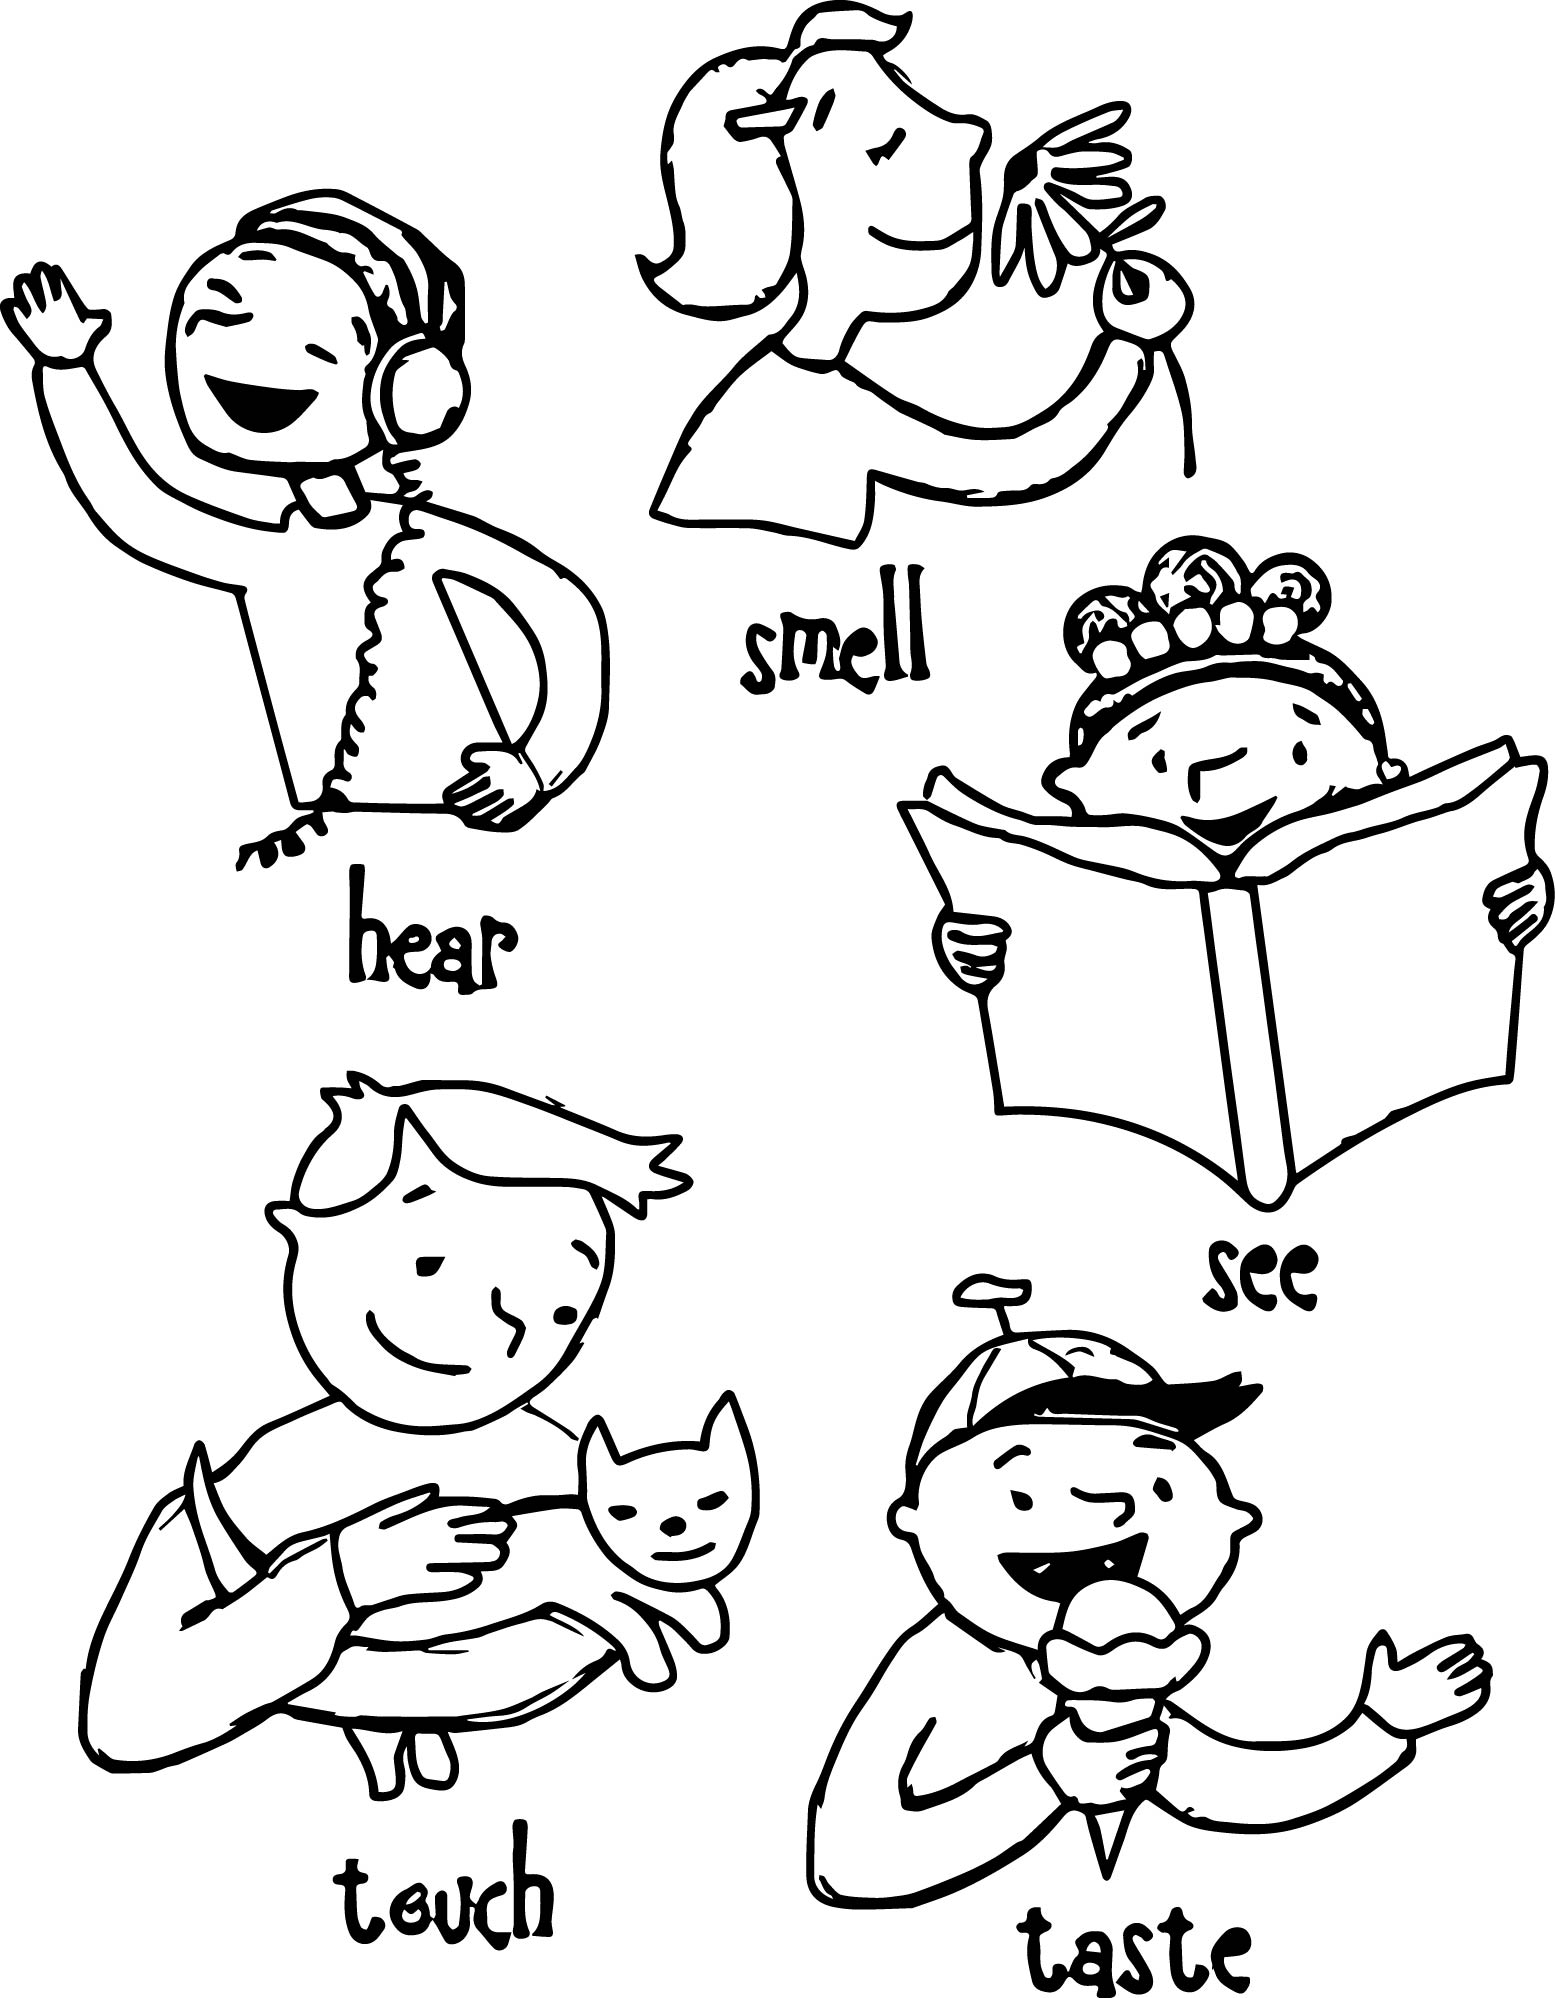 5 senses clipart black and white, Picture #210505 5 senses.